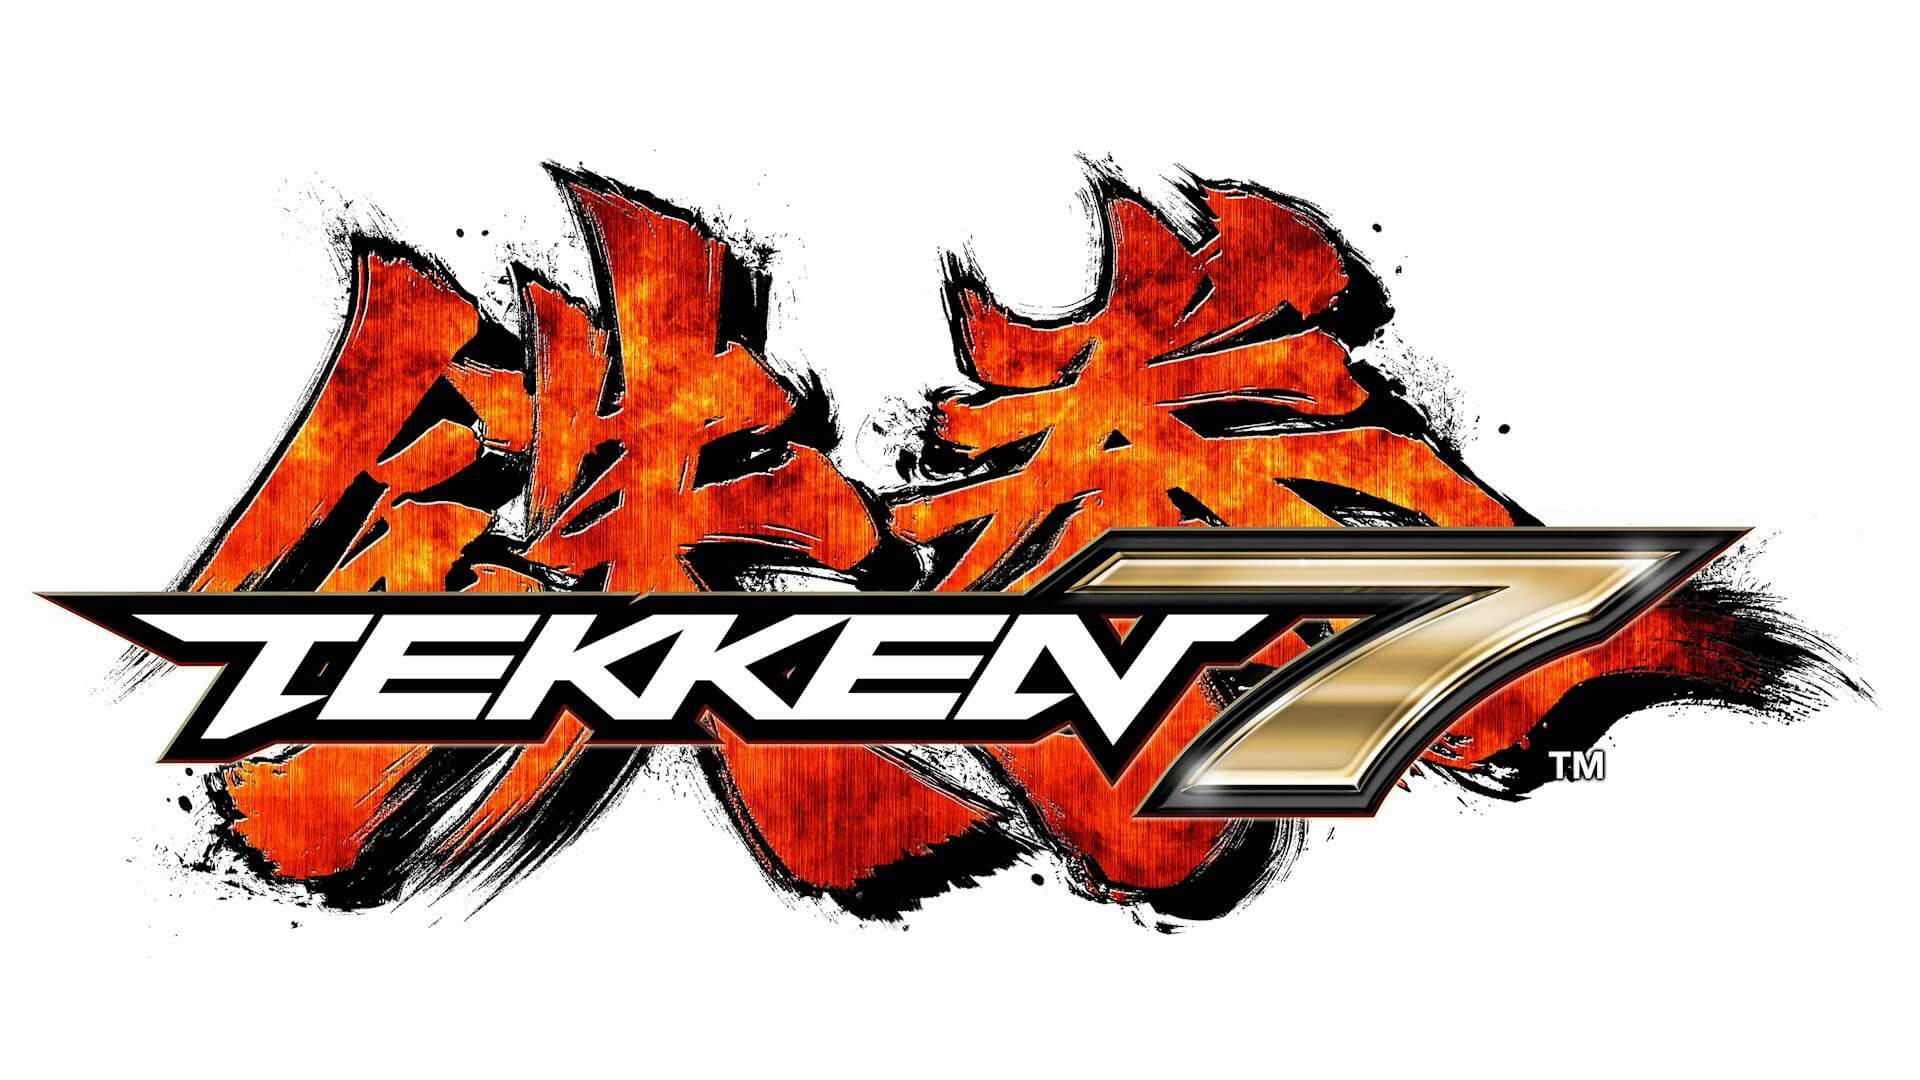 Tekken 7 Season 4 will be announced this weekend